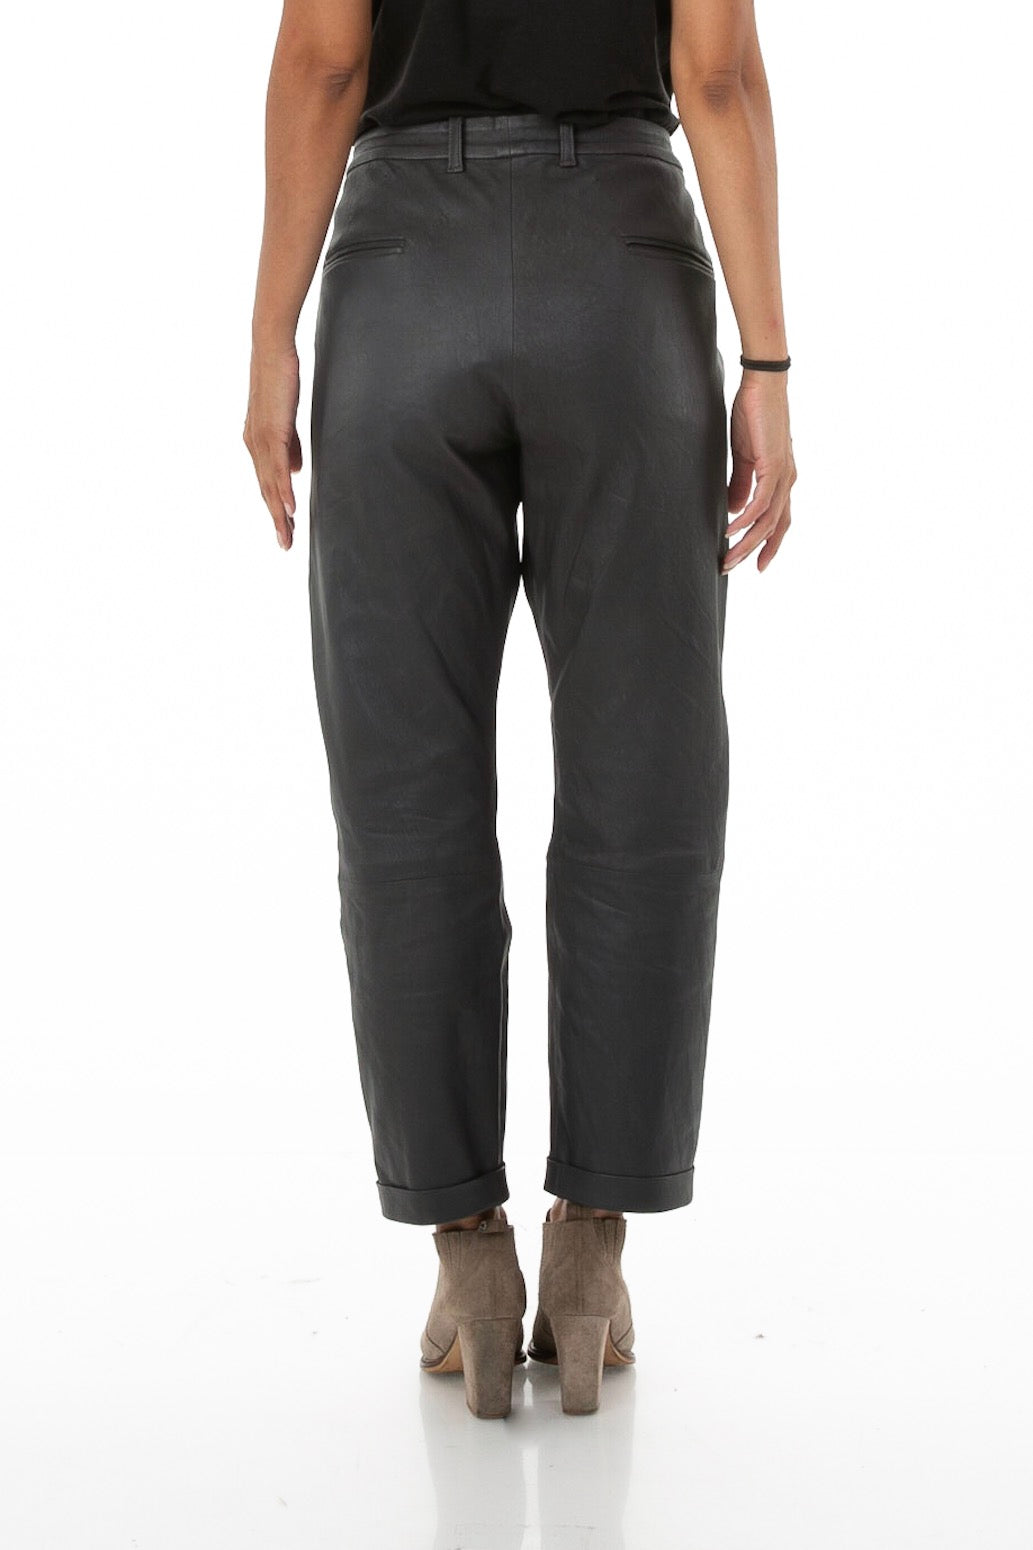 Cuffed Leather Pant in Charcoal